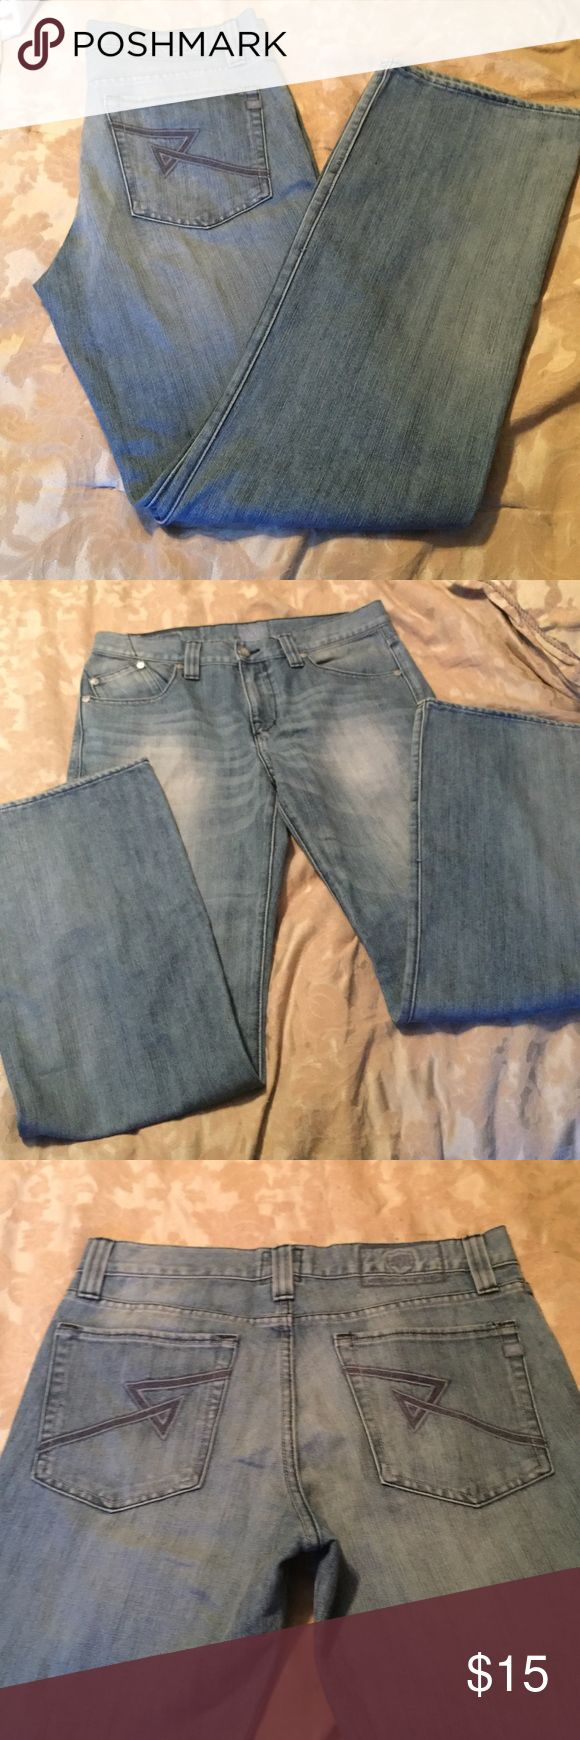 Men's faded wash rock and republic jeans Men's faded wash Rock and Republic jeans size 34 x 32 Rock & Republic Jeans Bootcut